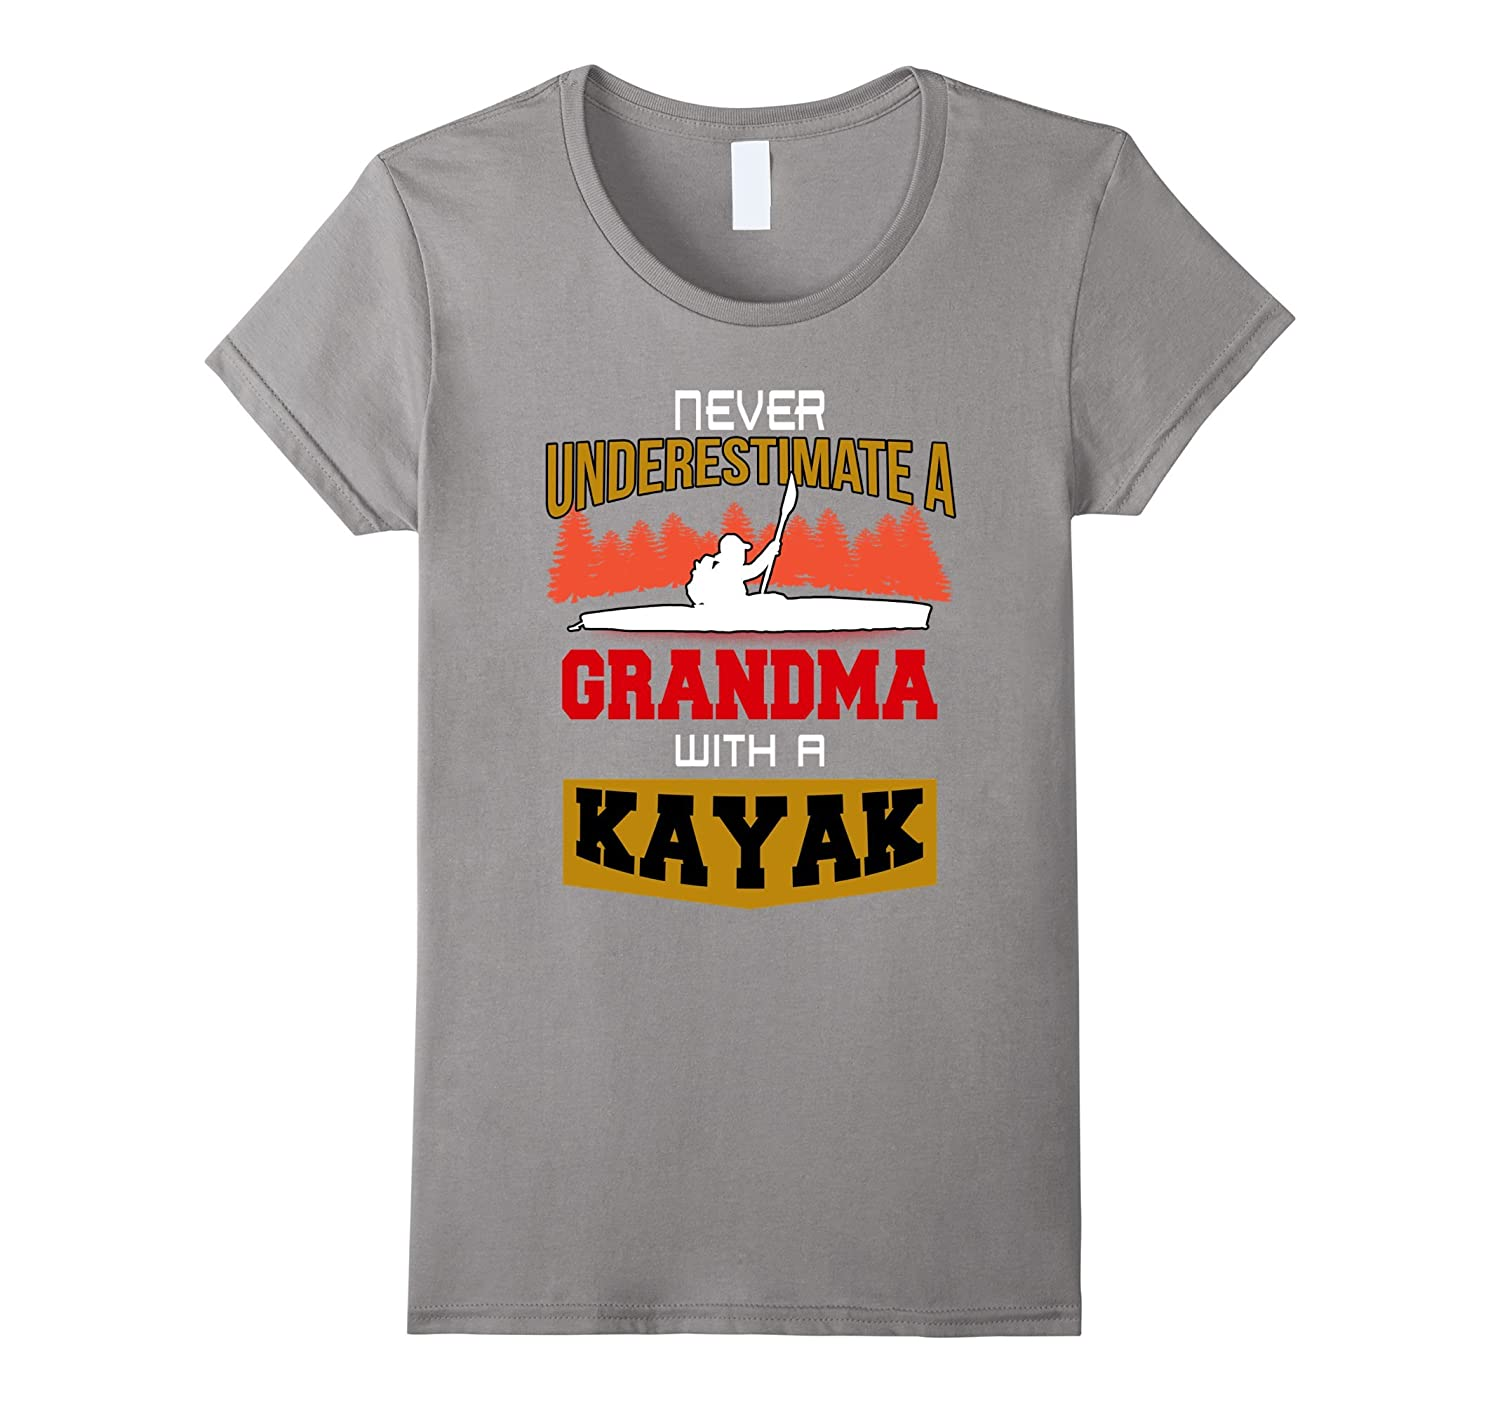 Never Underestimate a grandma with a kayak T-shirt